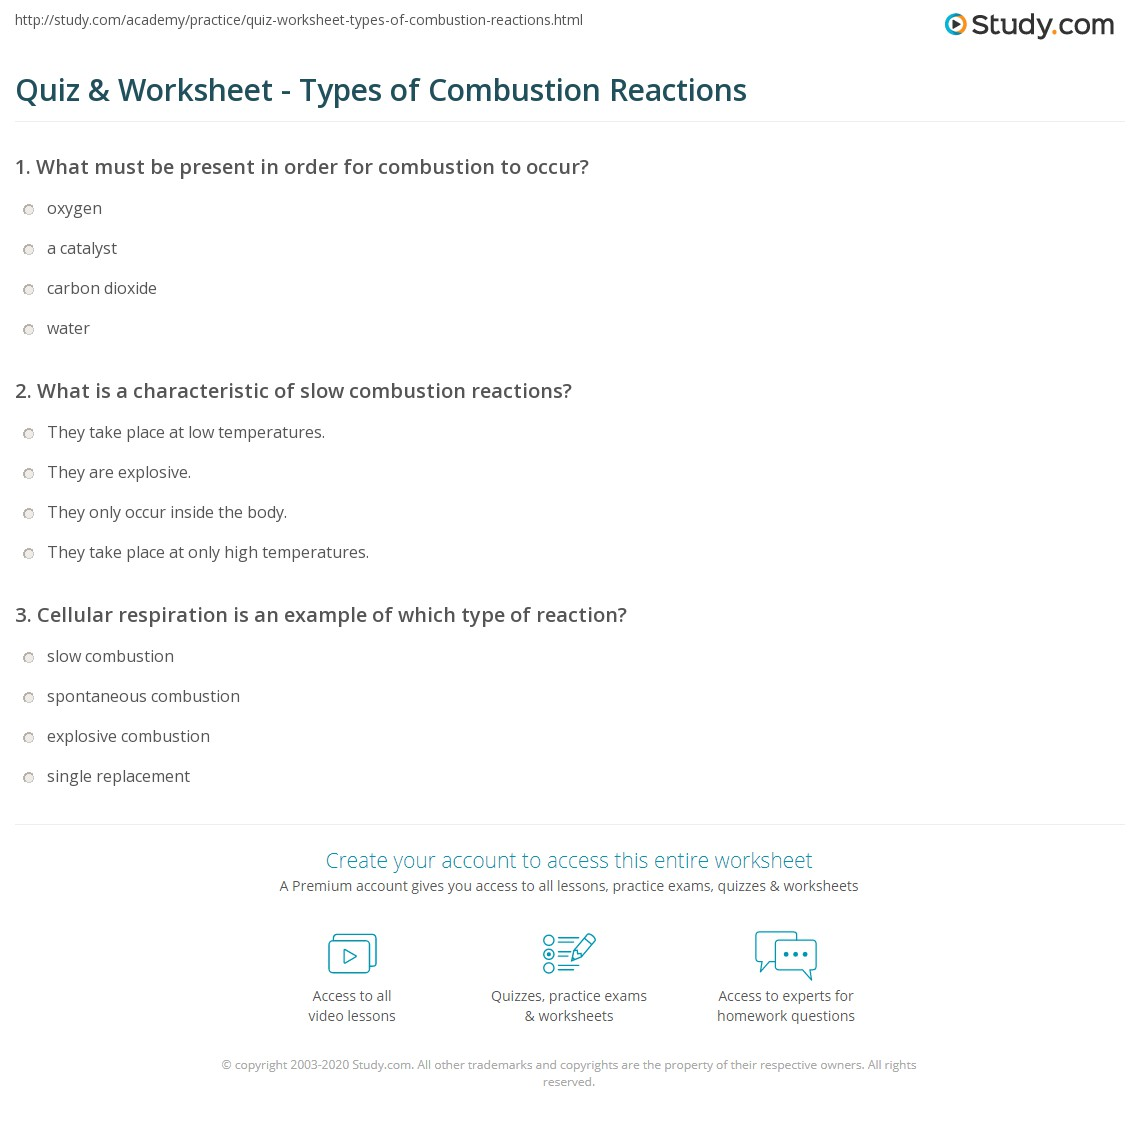 Quiz & Worksheet - Types of Combustion Reactions | Study.com